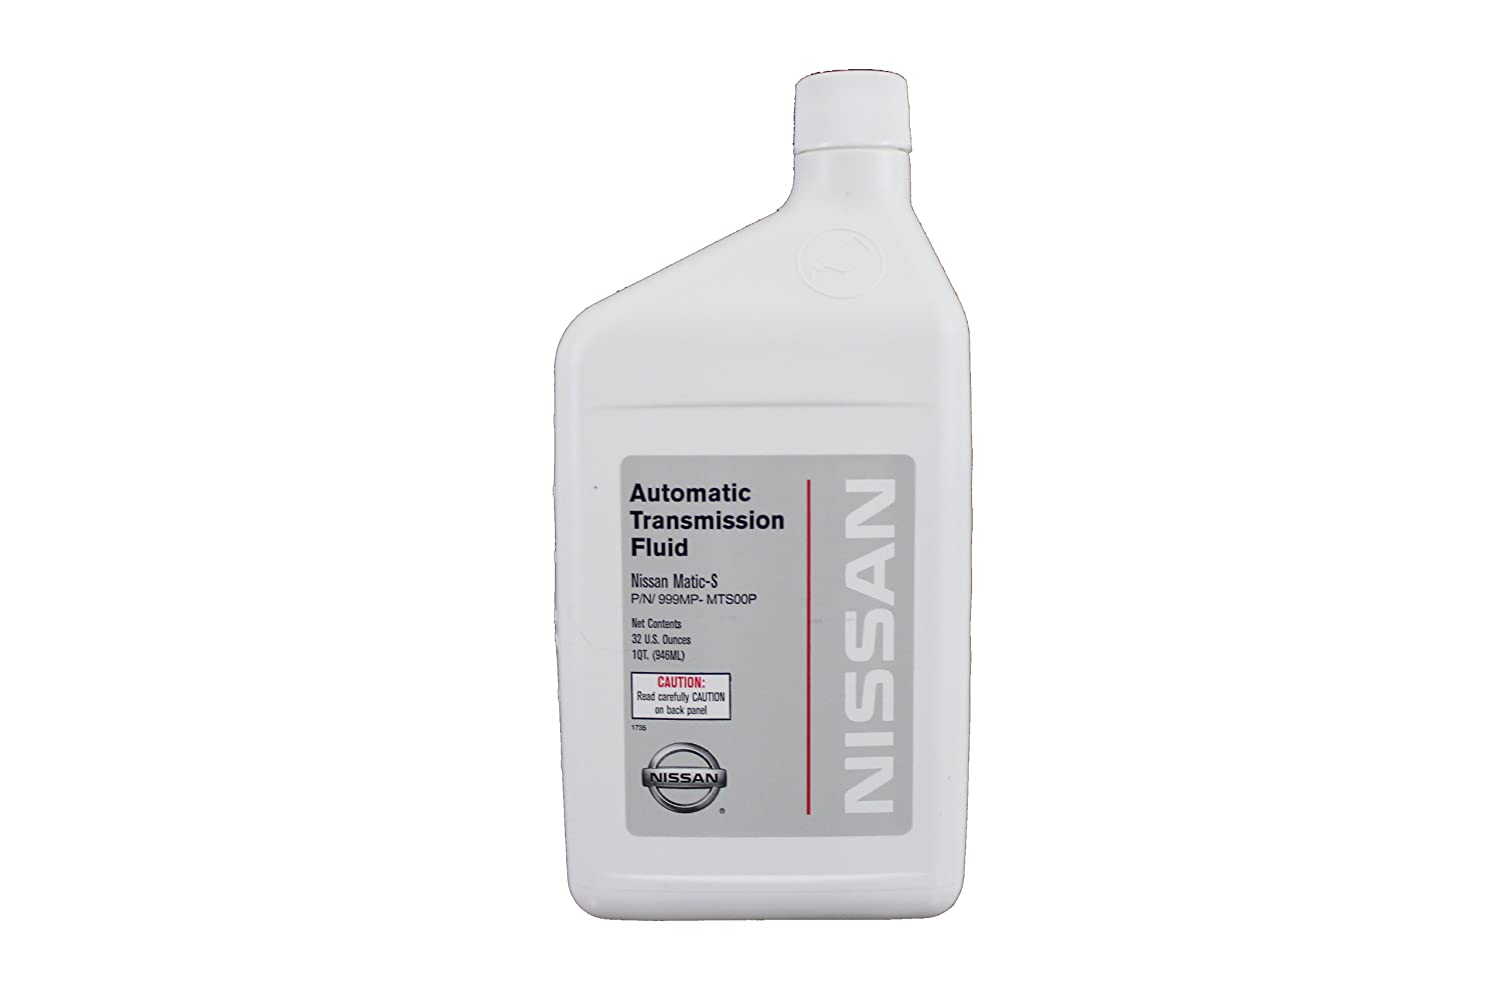 Genuine Nissan Fluid 999MP-MTS00P Nissan Matic-S Automatic Transmission Fluid - 1 Quart